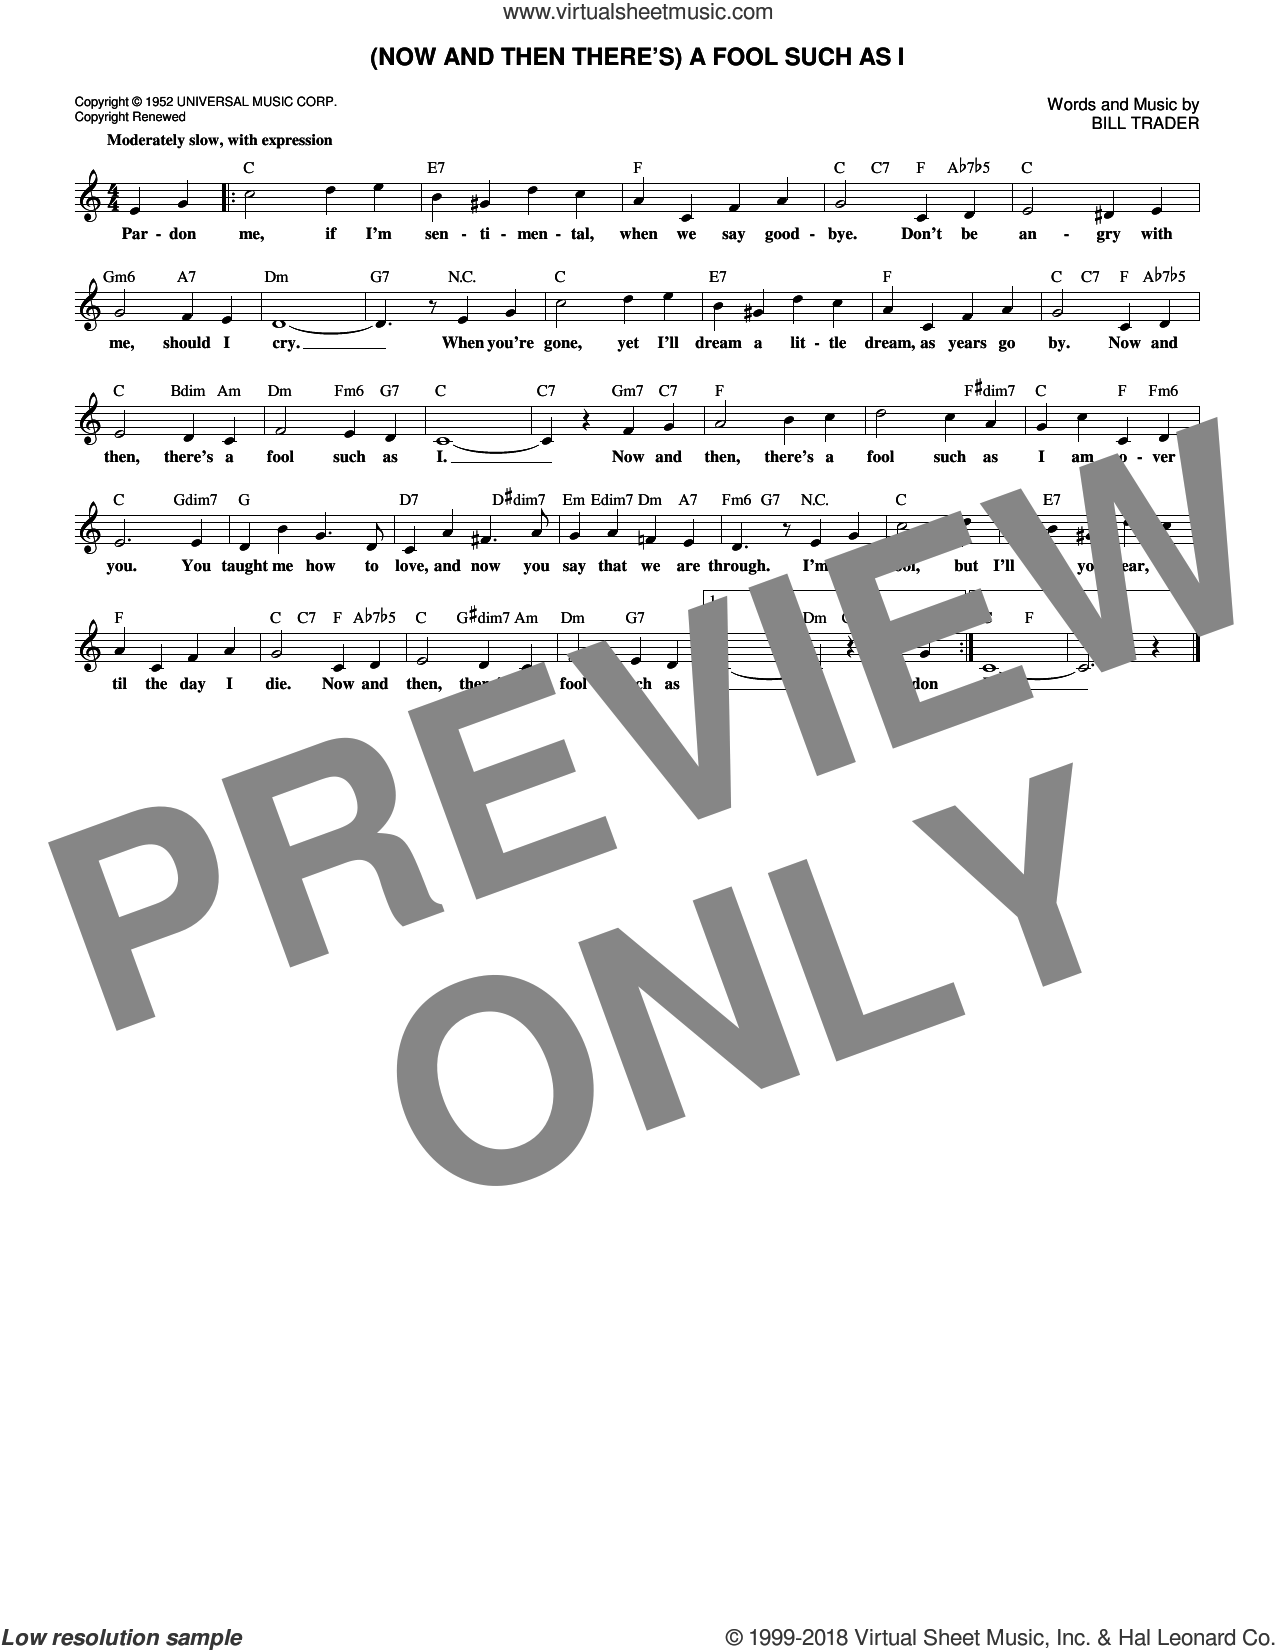 (Now And Then There's) A Fool Such As I sheet music for voice and other instruments (fake book) by Bill Trader, Bob Dylan, Elvis Presley and Hank Snow, intermediate skill level